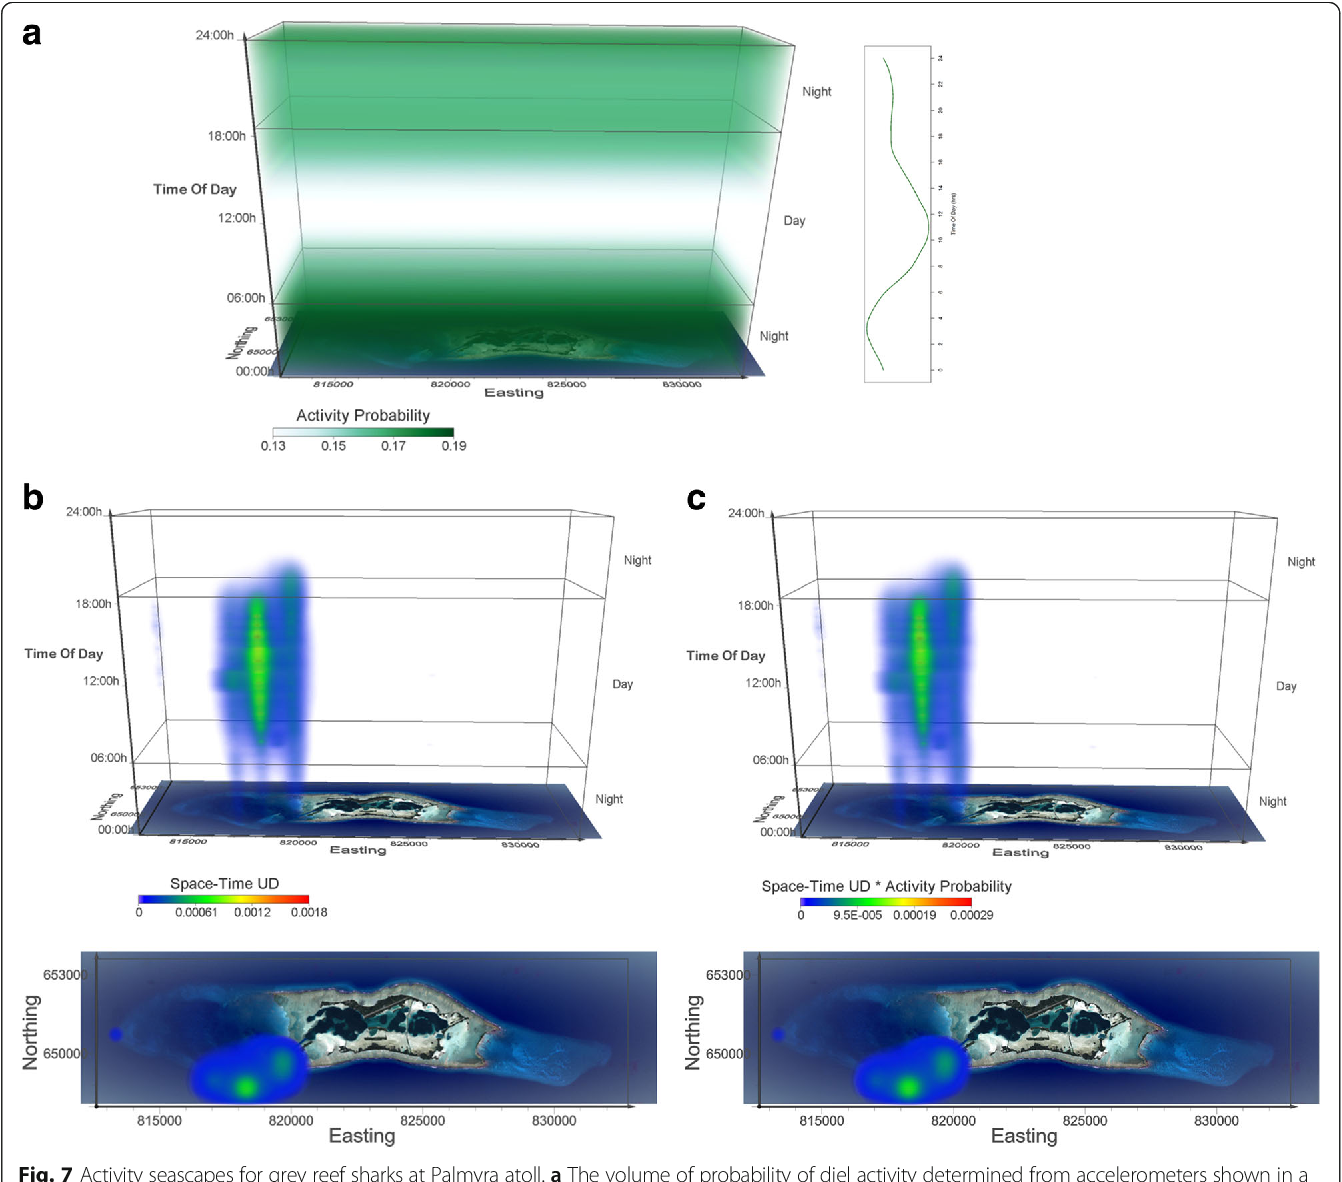 Fig. 7 Activity seascapes for grey reef sharks at Palmyra atoll. a The volume of probability of diel activity determined from accelerometers shown in a space-time cube, where each voxel gets the value of respective probability based on the time in the voxel. Darker/lighter green voxels in the probability volume correspond to higher/lower probability values in the chart. b Space-time density volume for grey reef sharks (n = 17). The bottom panel shows the projection of the volume onto the two geographic dimensions, i.e. the map of Palmyra atoll. Note that this is a view from above the 3D UD volume and not a 2D UD surface. c Activity seascape for grey reef sharks (n = 17). The bottom panel shows the projection of the volume onto the map of Palmyra atoll. Voxel size in all volumetric representations is 100 m× 100 m× 10 min, creating a Space-Time volume of 202 × 56 × 144 voxels (20.2 km× 5.6 km× 24 h)